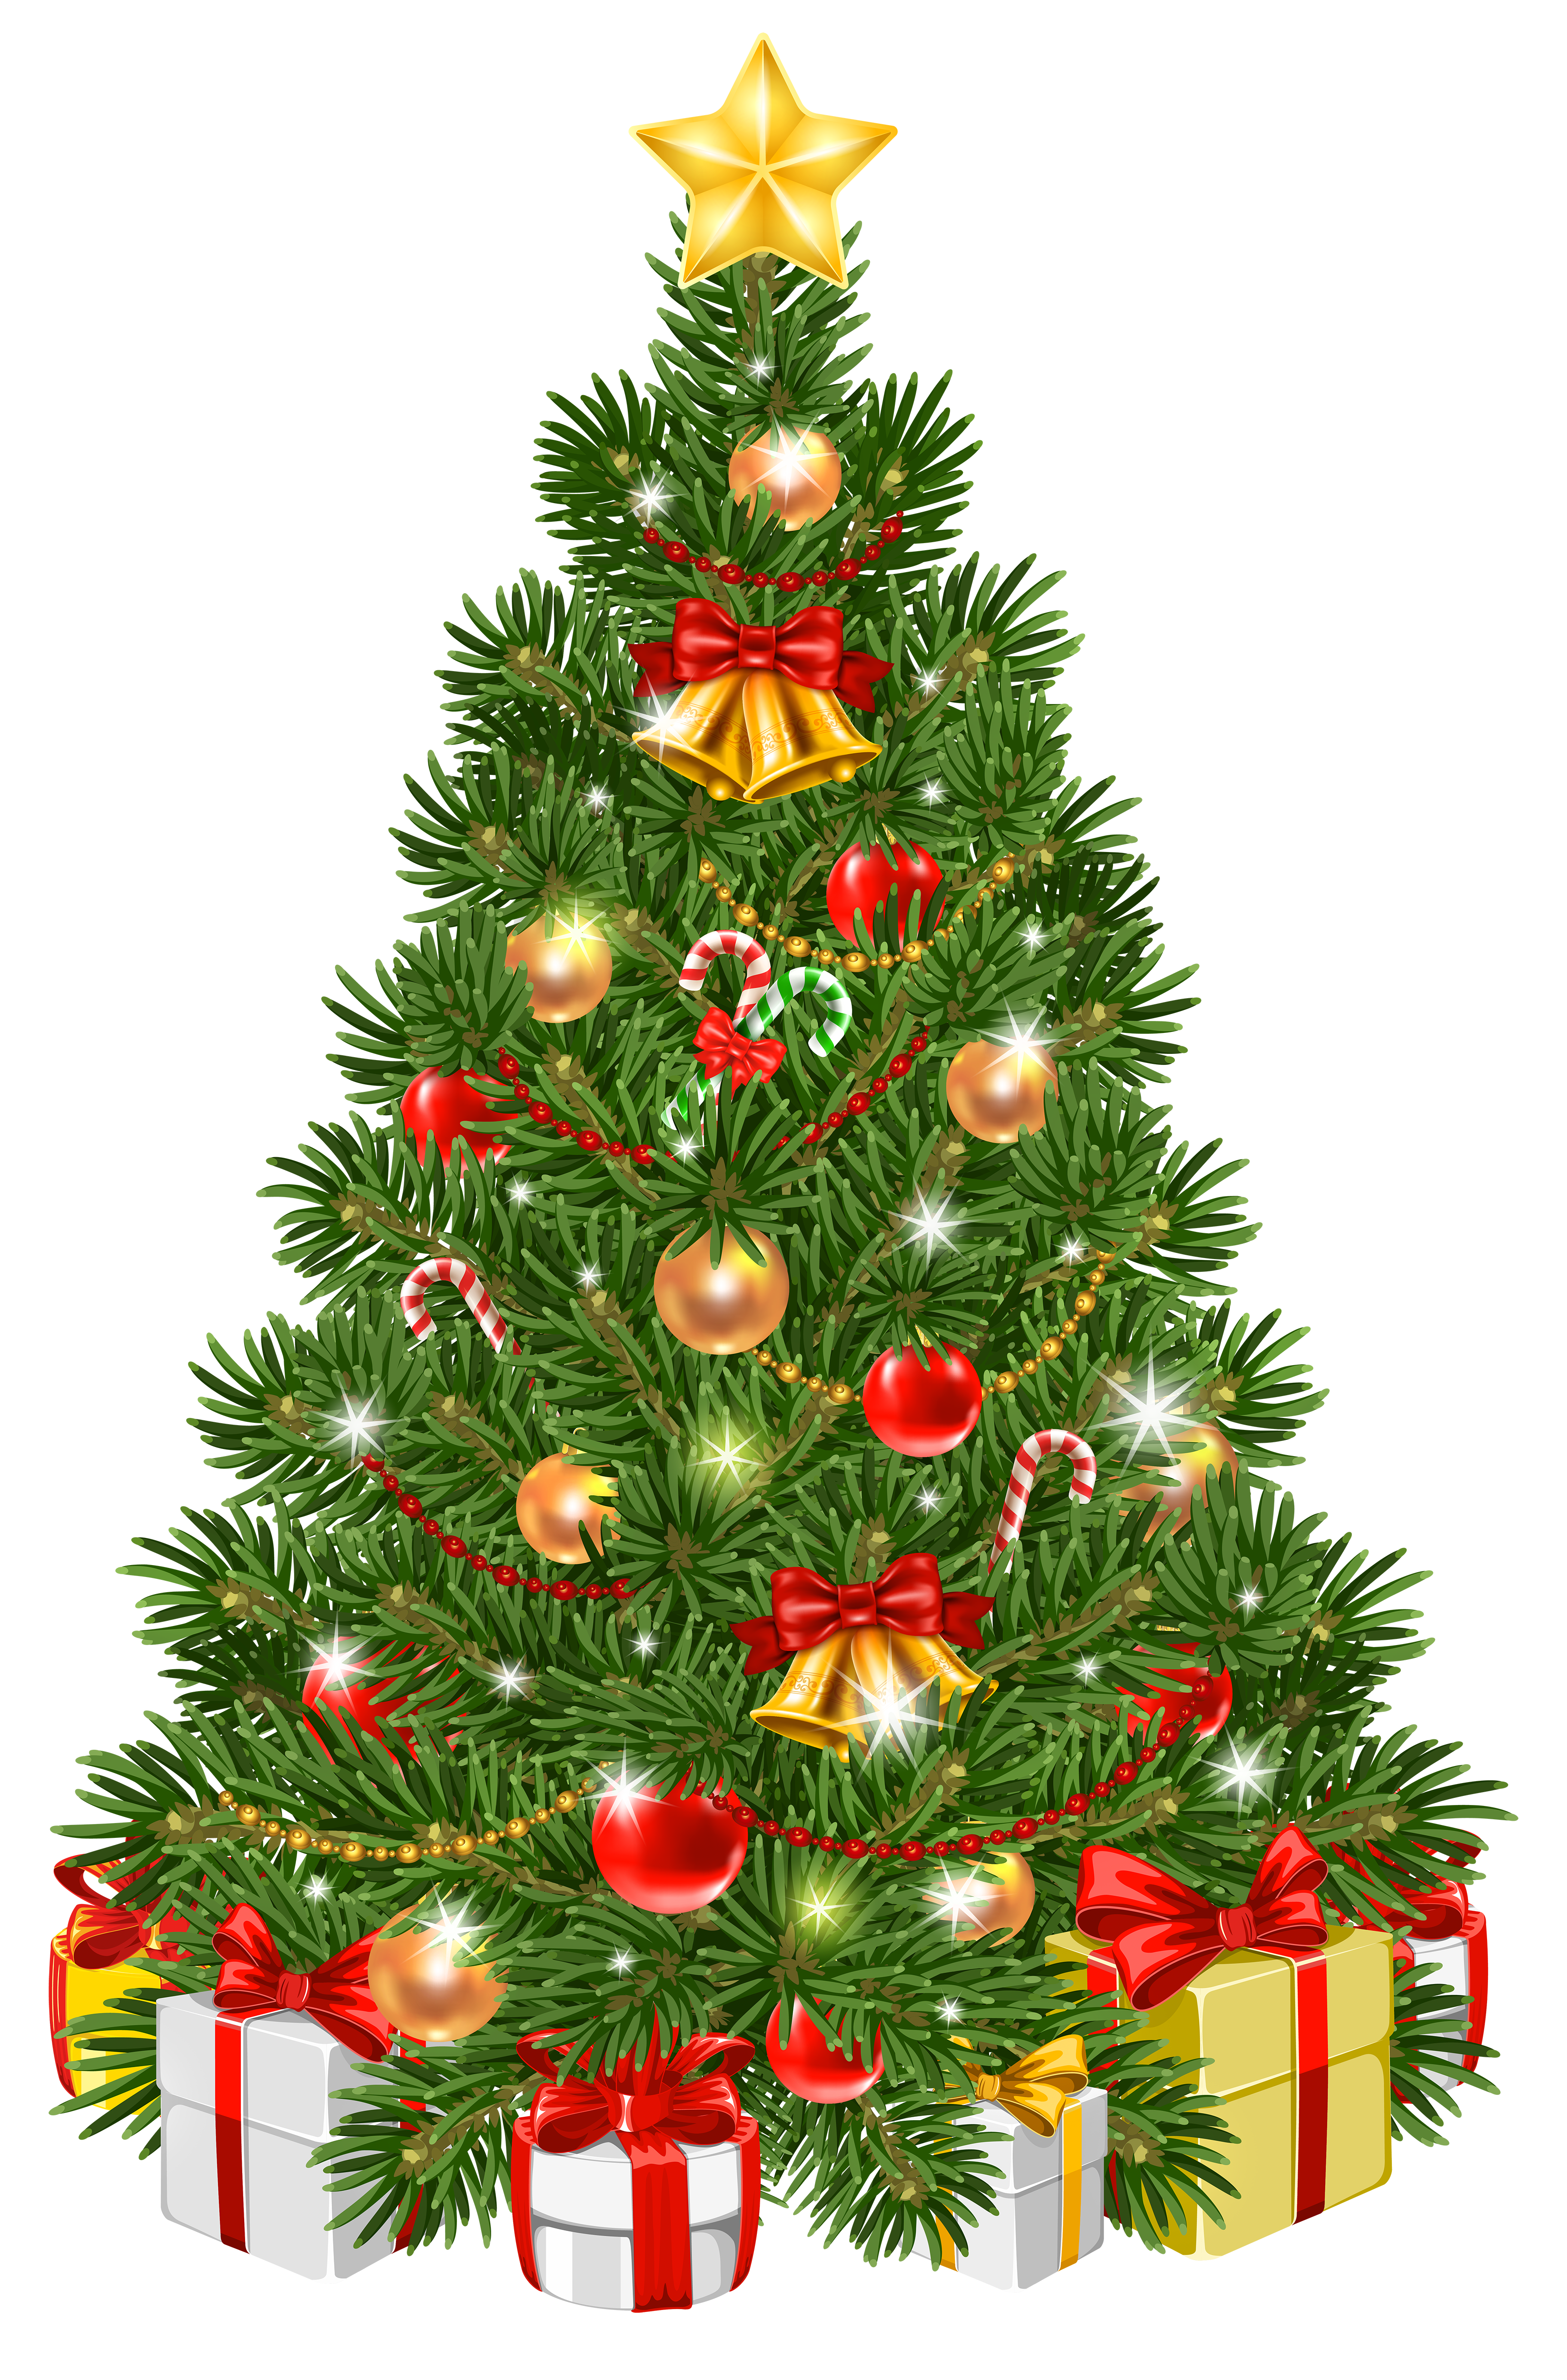 Decorated Christmas Tree Transparent PNG Clip Art Image.